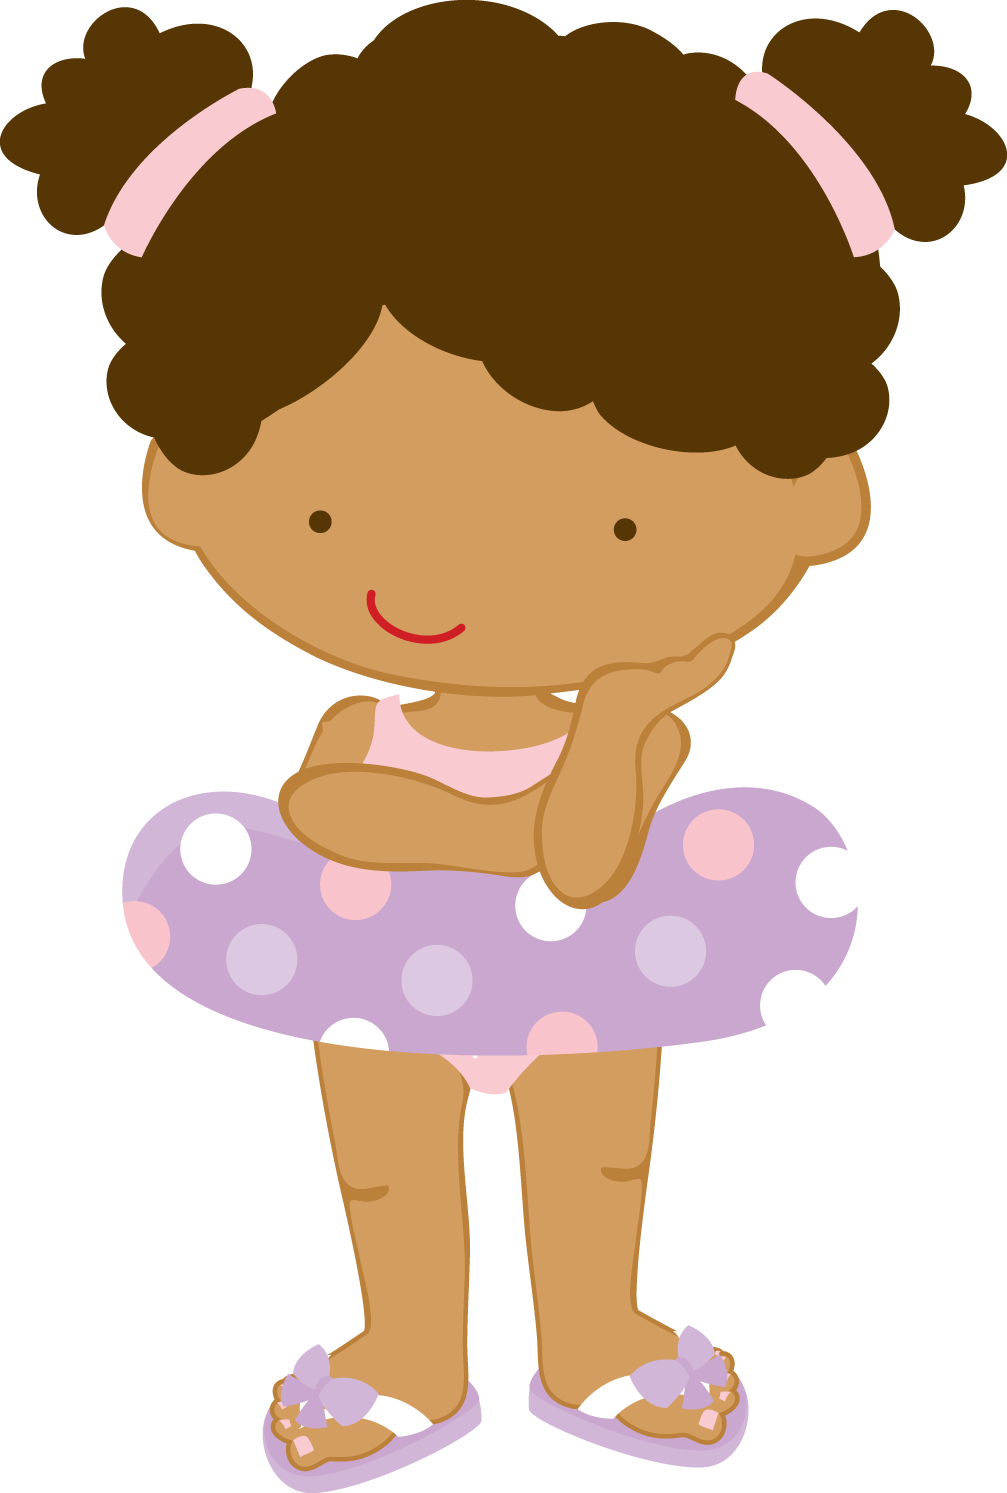 Zwd poolparty poolgirl png. Girly clipart beach